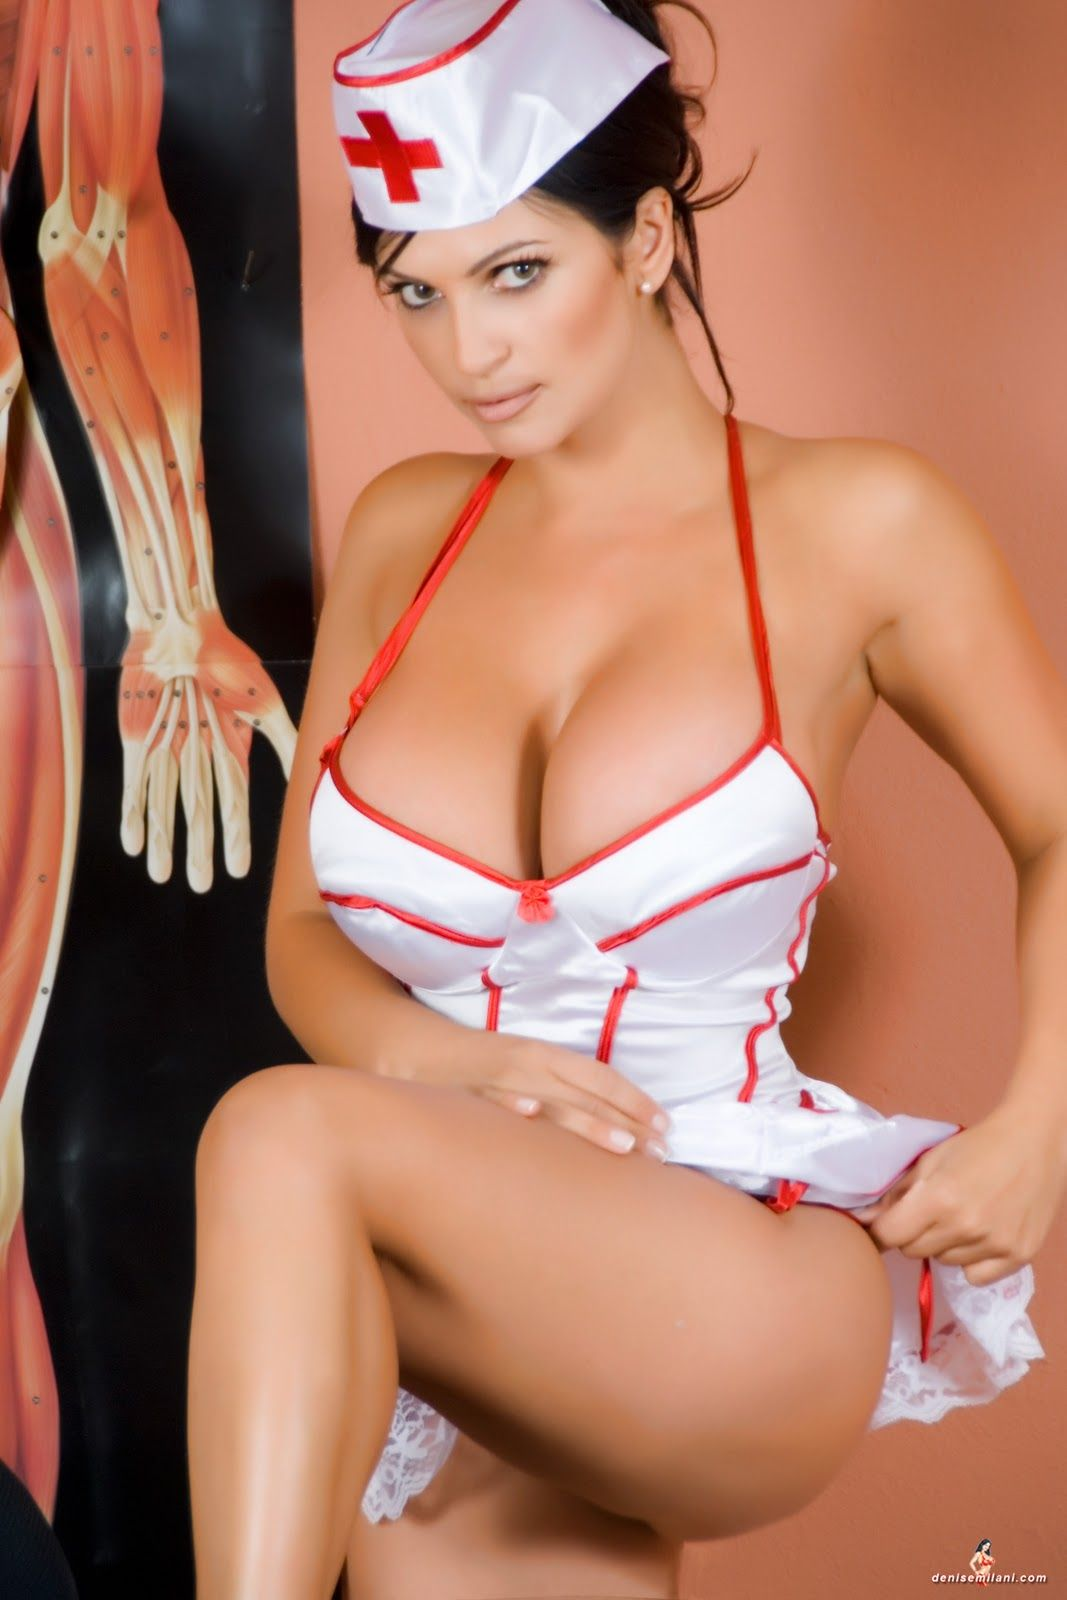 hot nurse tube blog. http://hot-nurse-tube.blogspot/ super hot